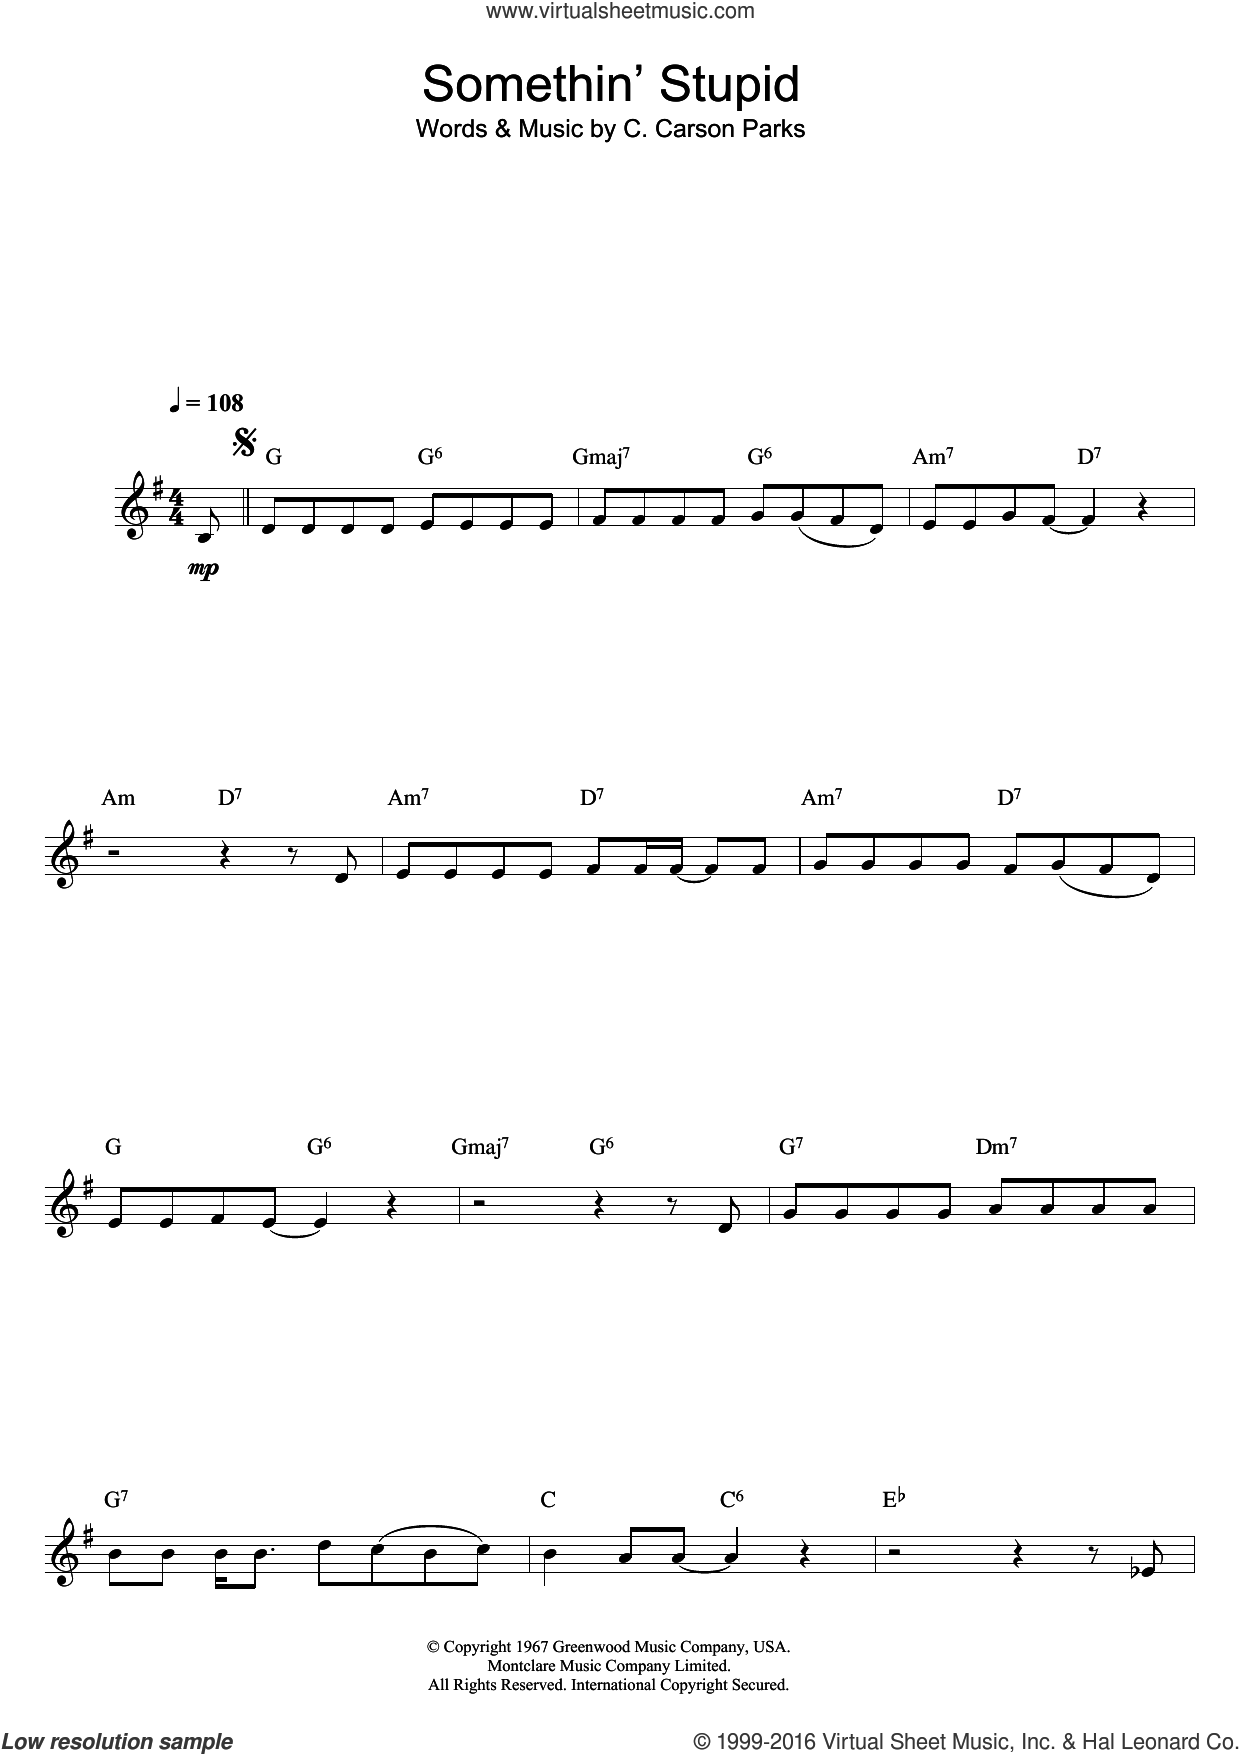 Somethin' Stupid sheet music for clarinet solo by Frank Sinatra and C. Carson Parks, intermediate skill level